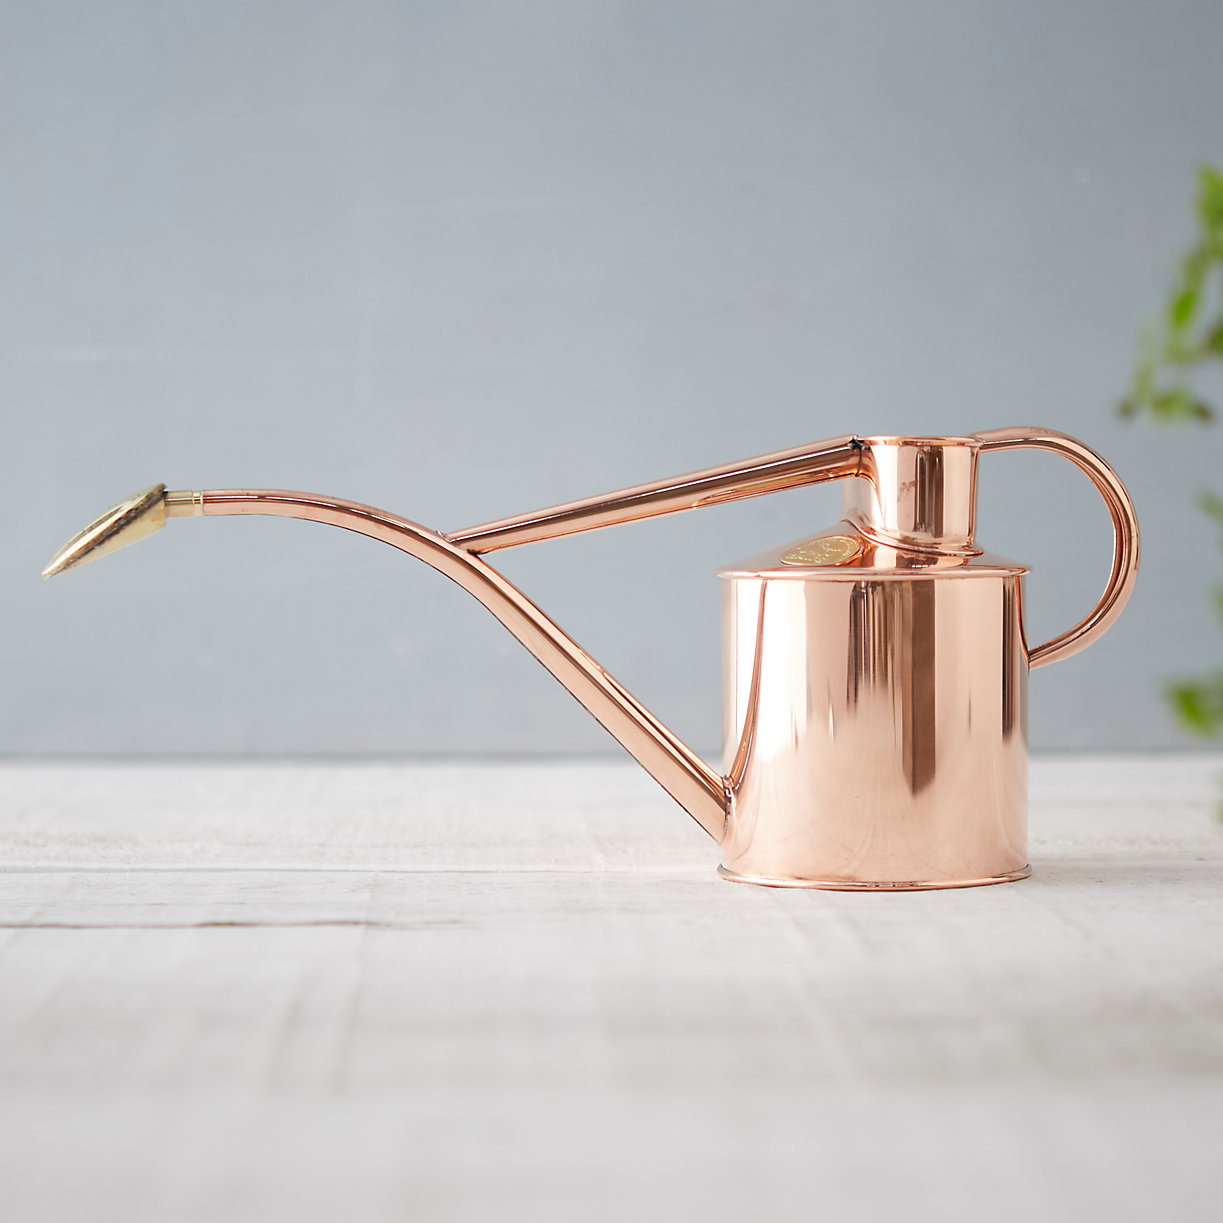 Copper Watering Can, $98